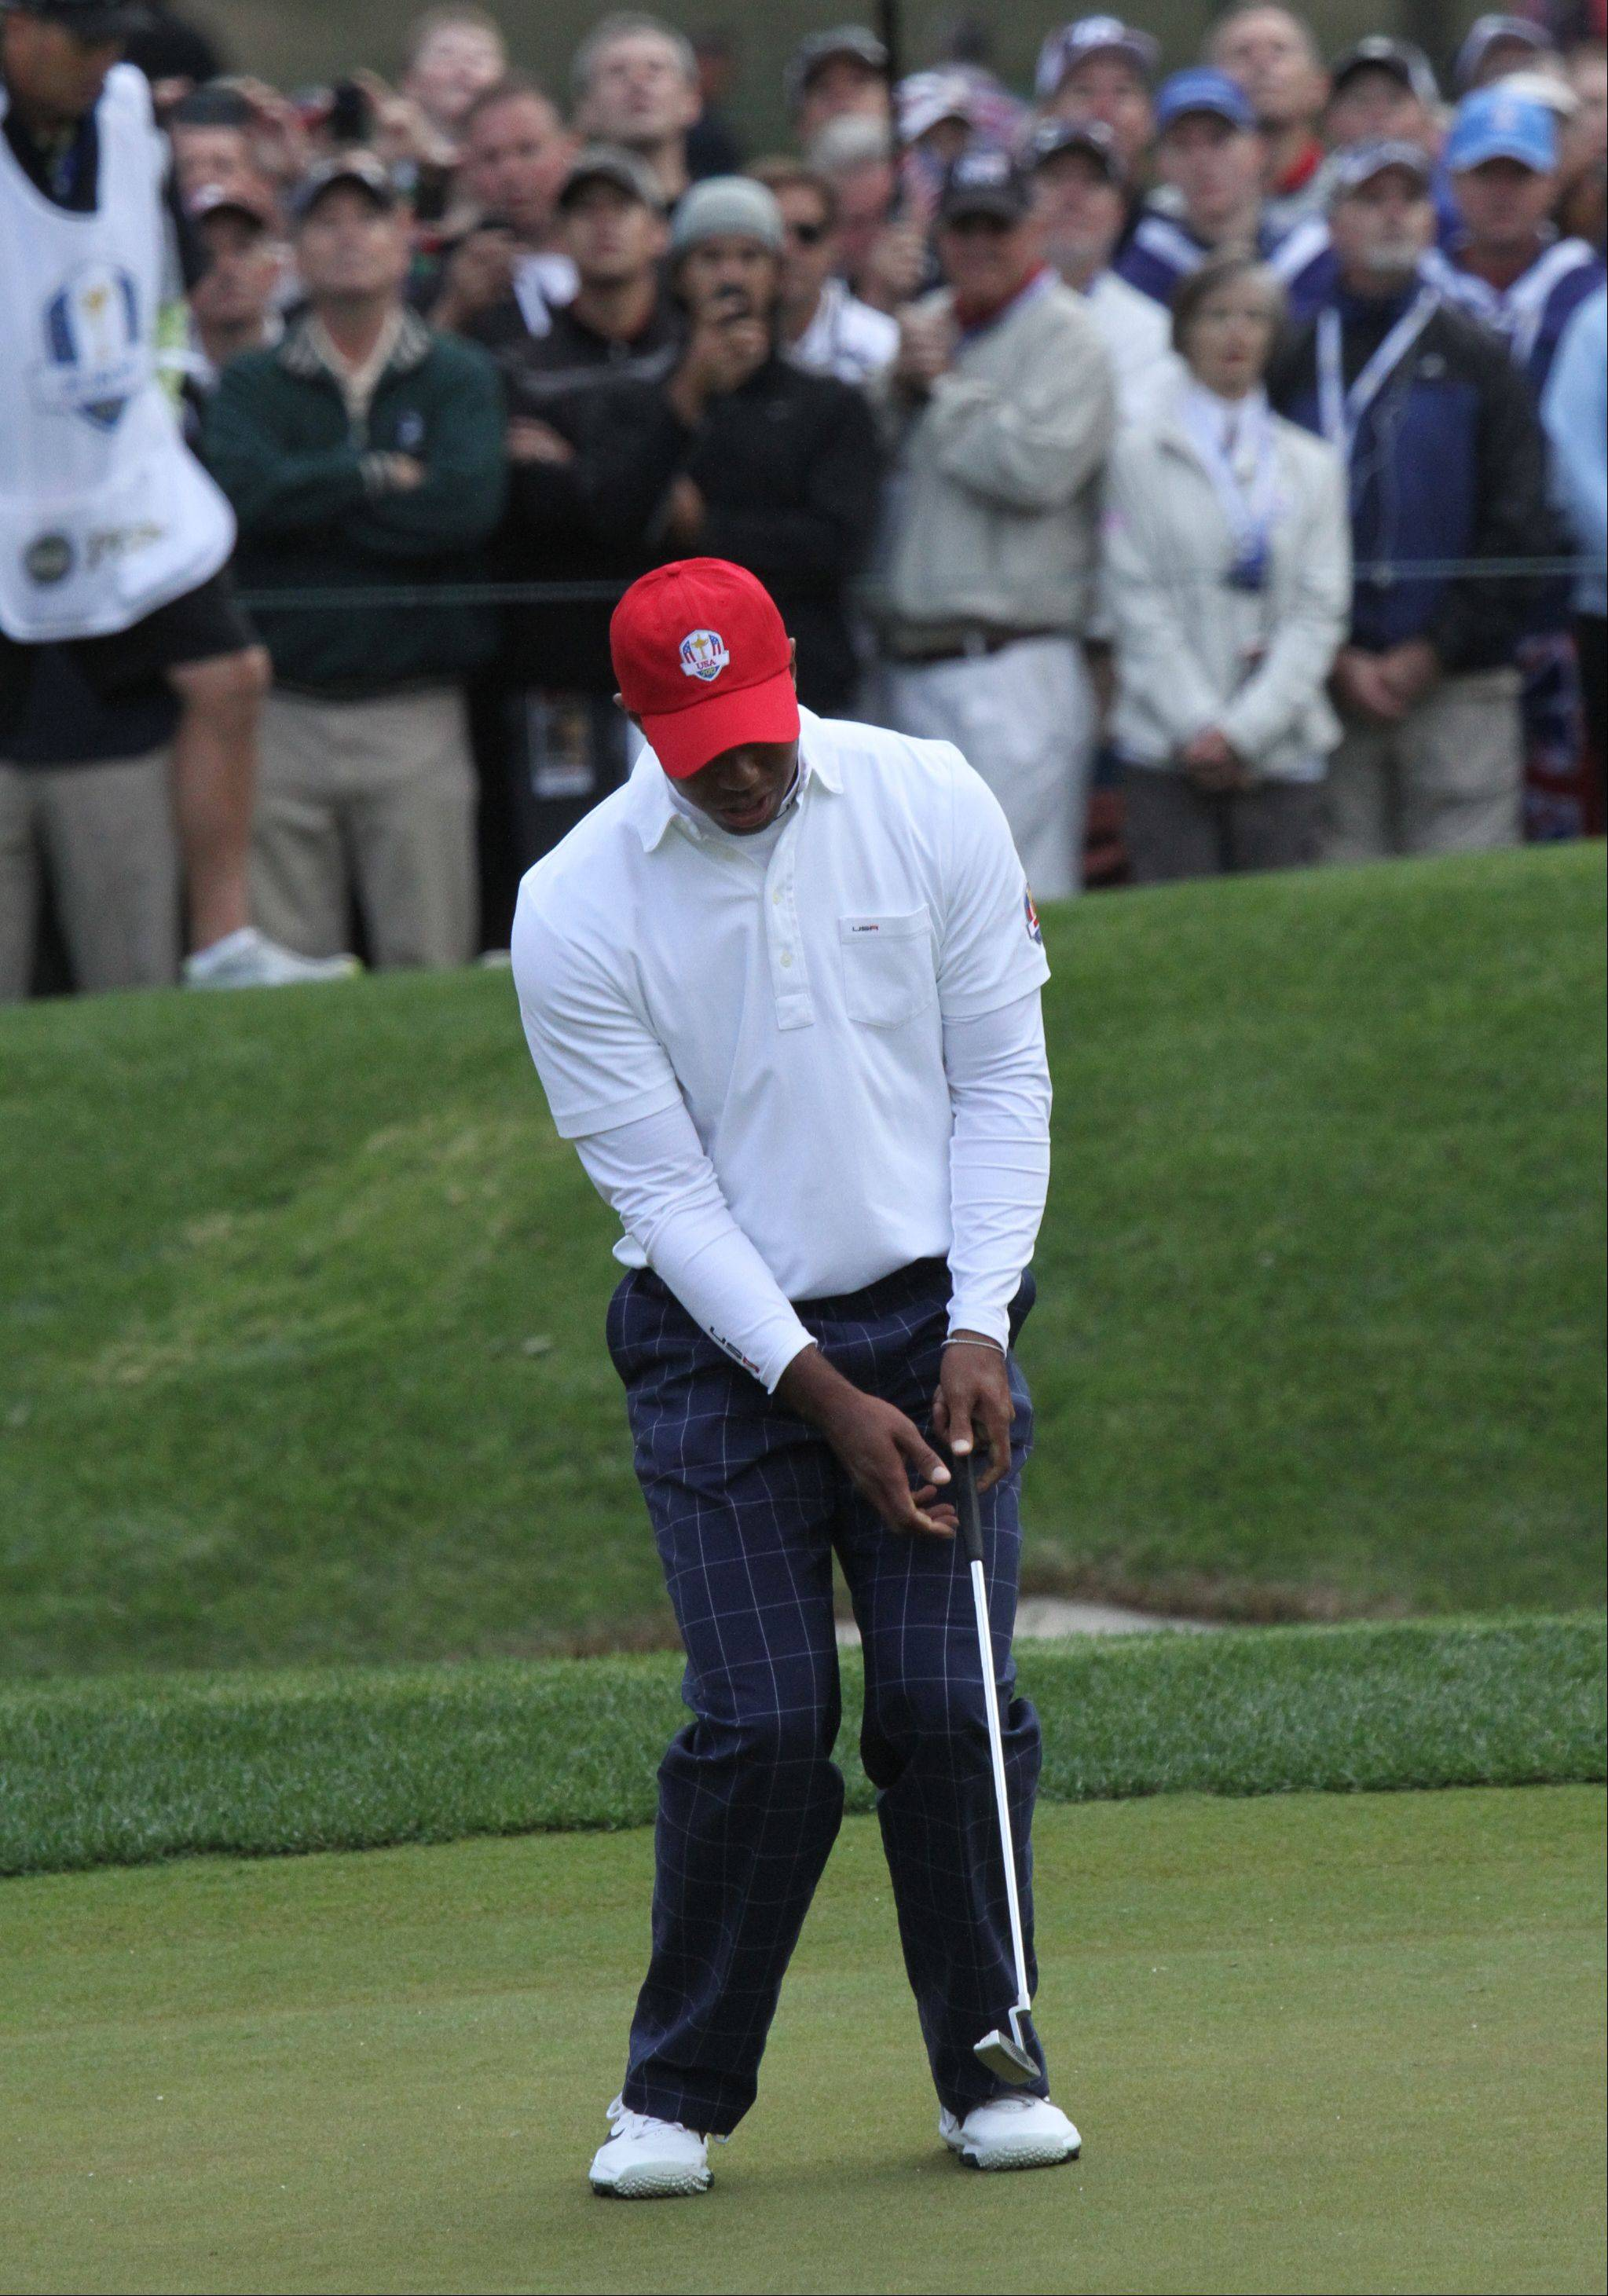 Tiger Woods reacts after missing a putt on the 3rd hole during the Friday's morning round at the Ryder Cup at Medinah Country Club.